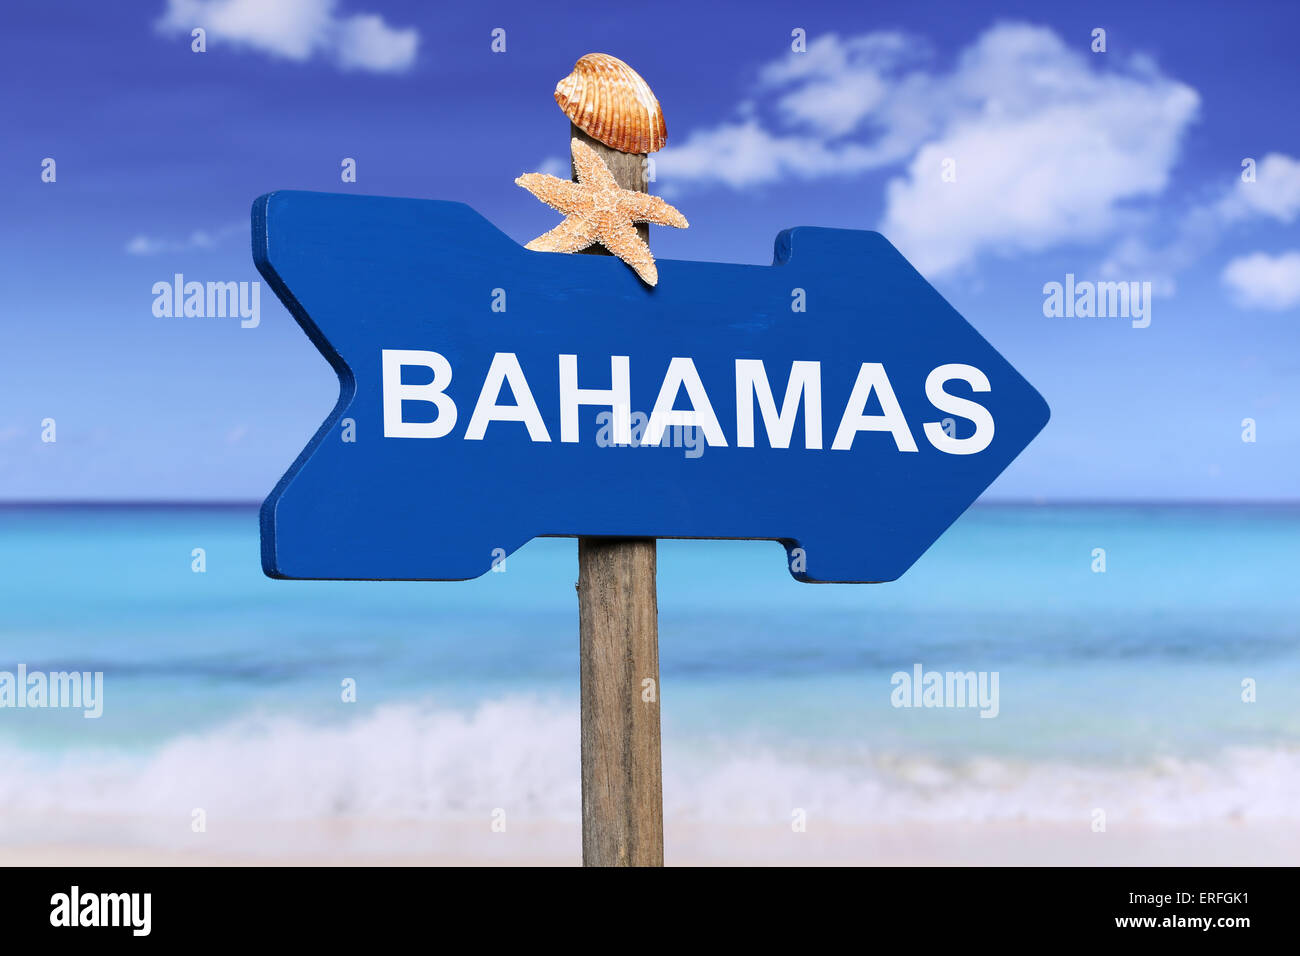 Bahamas with beach and sea in summer on vacation - Stock Image